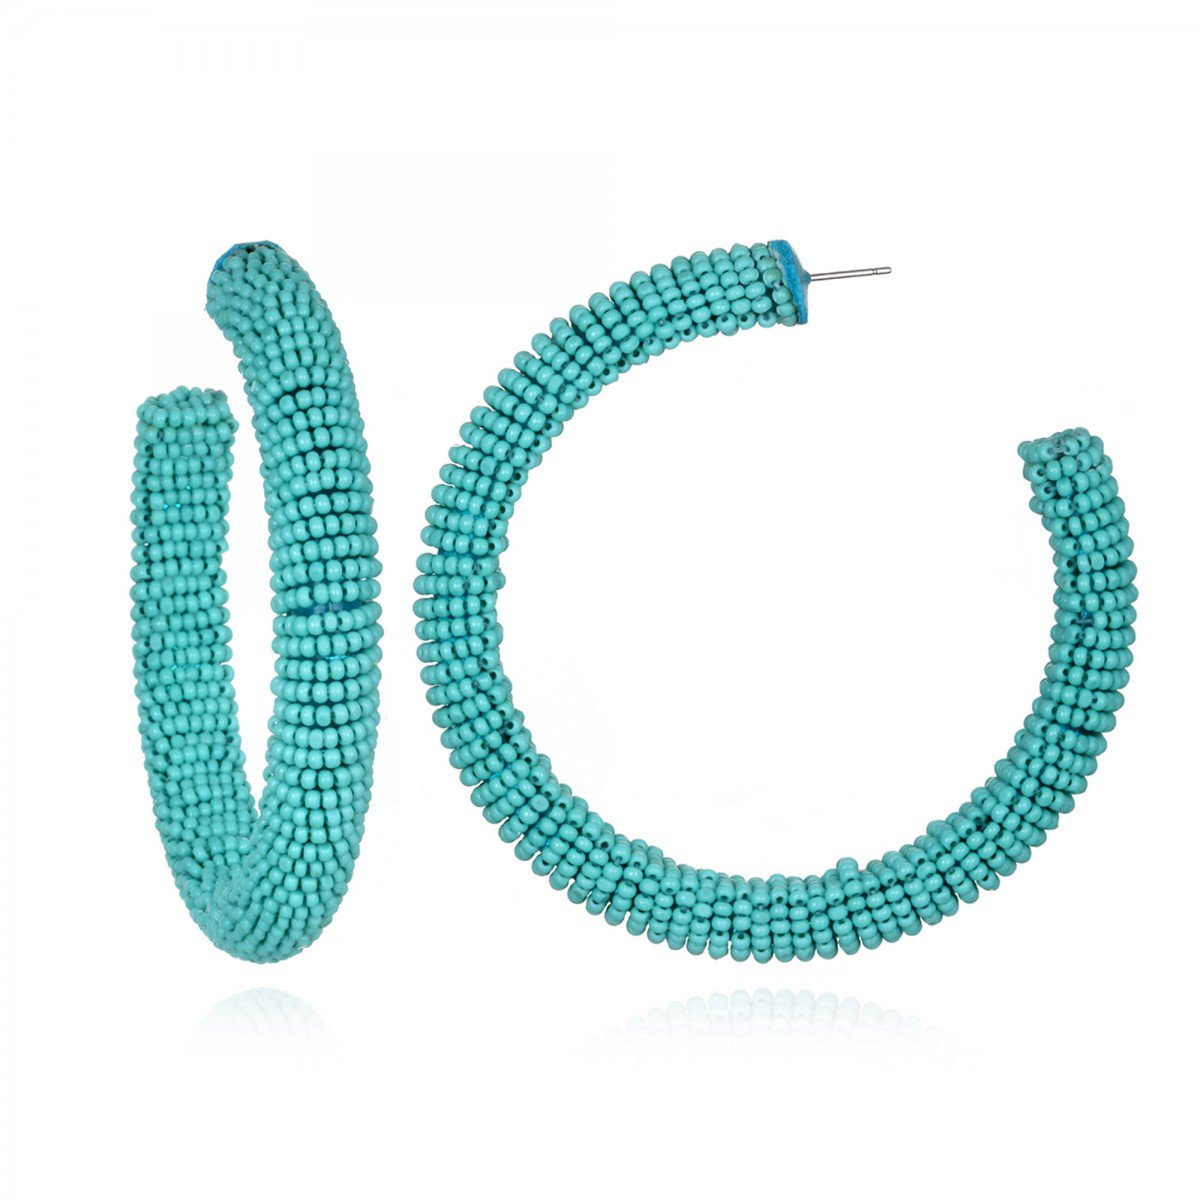 Turquoise Beaded Hoop Earrings by SUZANNA DAI